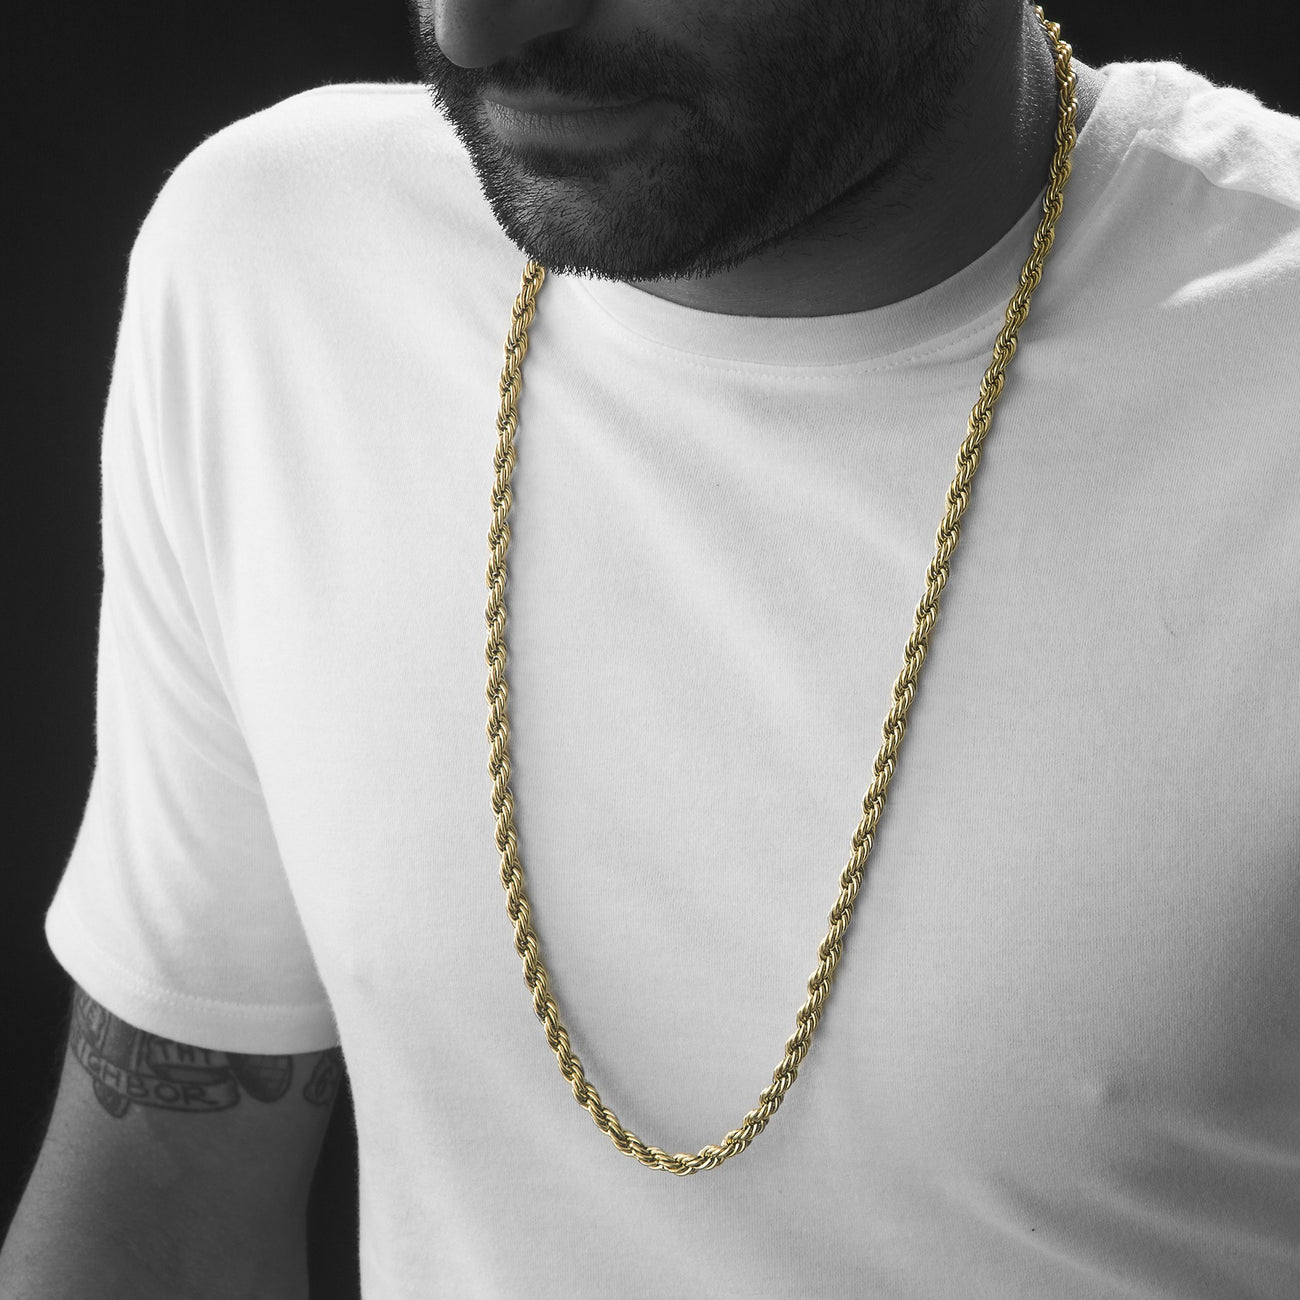 6mm Gold Rope Dookie Chain , Chains, SpicyIce - 3